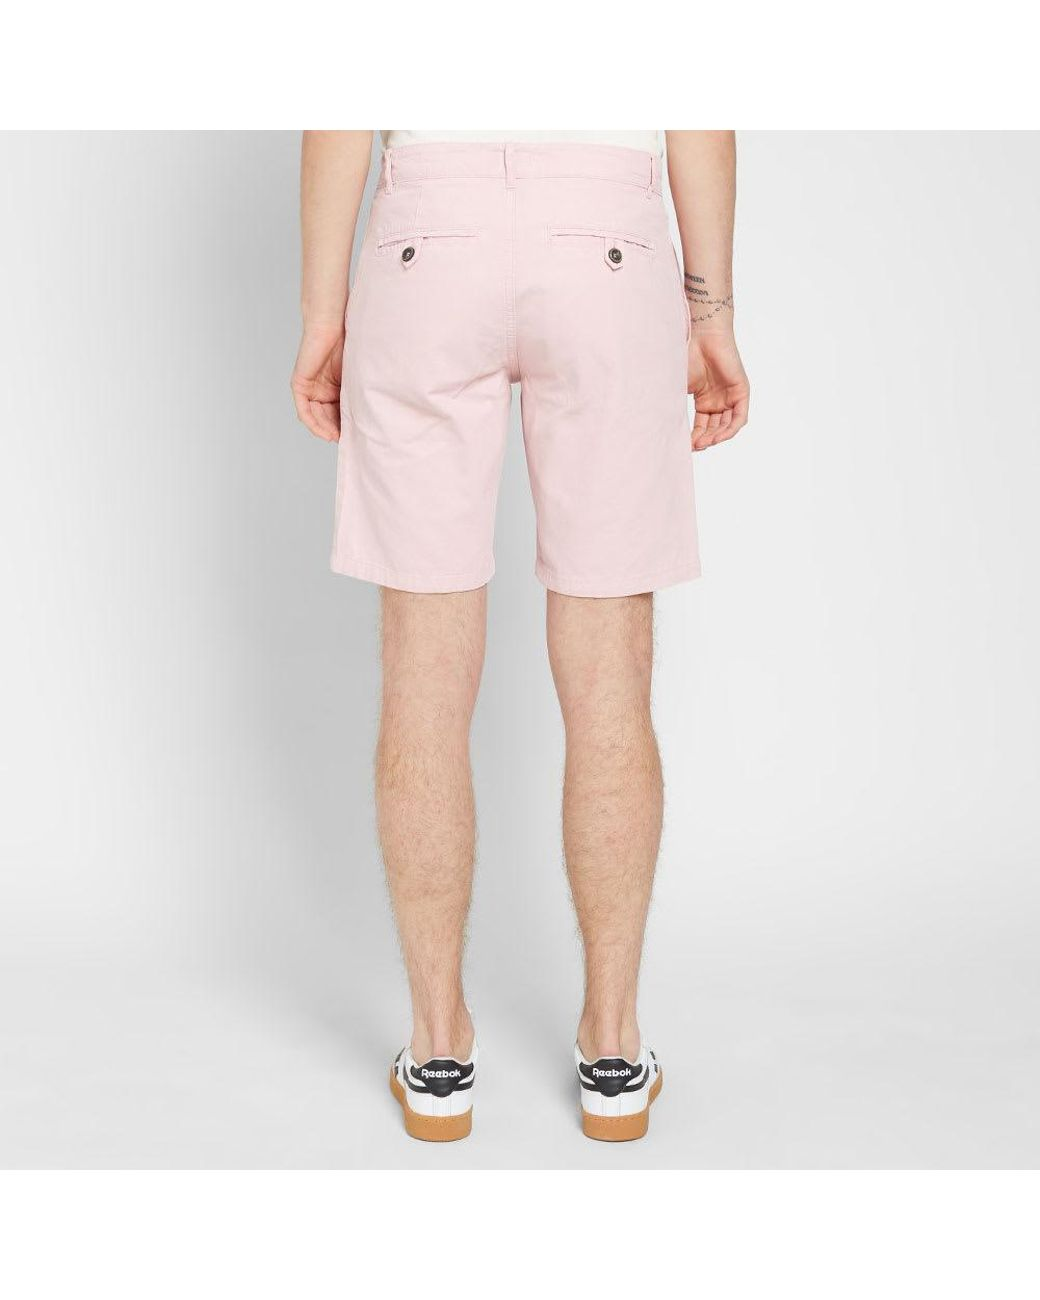 best website factory outlet new concept Armor Lux Cotton 77366 Bermuda Short in Pink for Men - Lyst